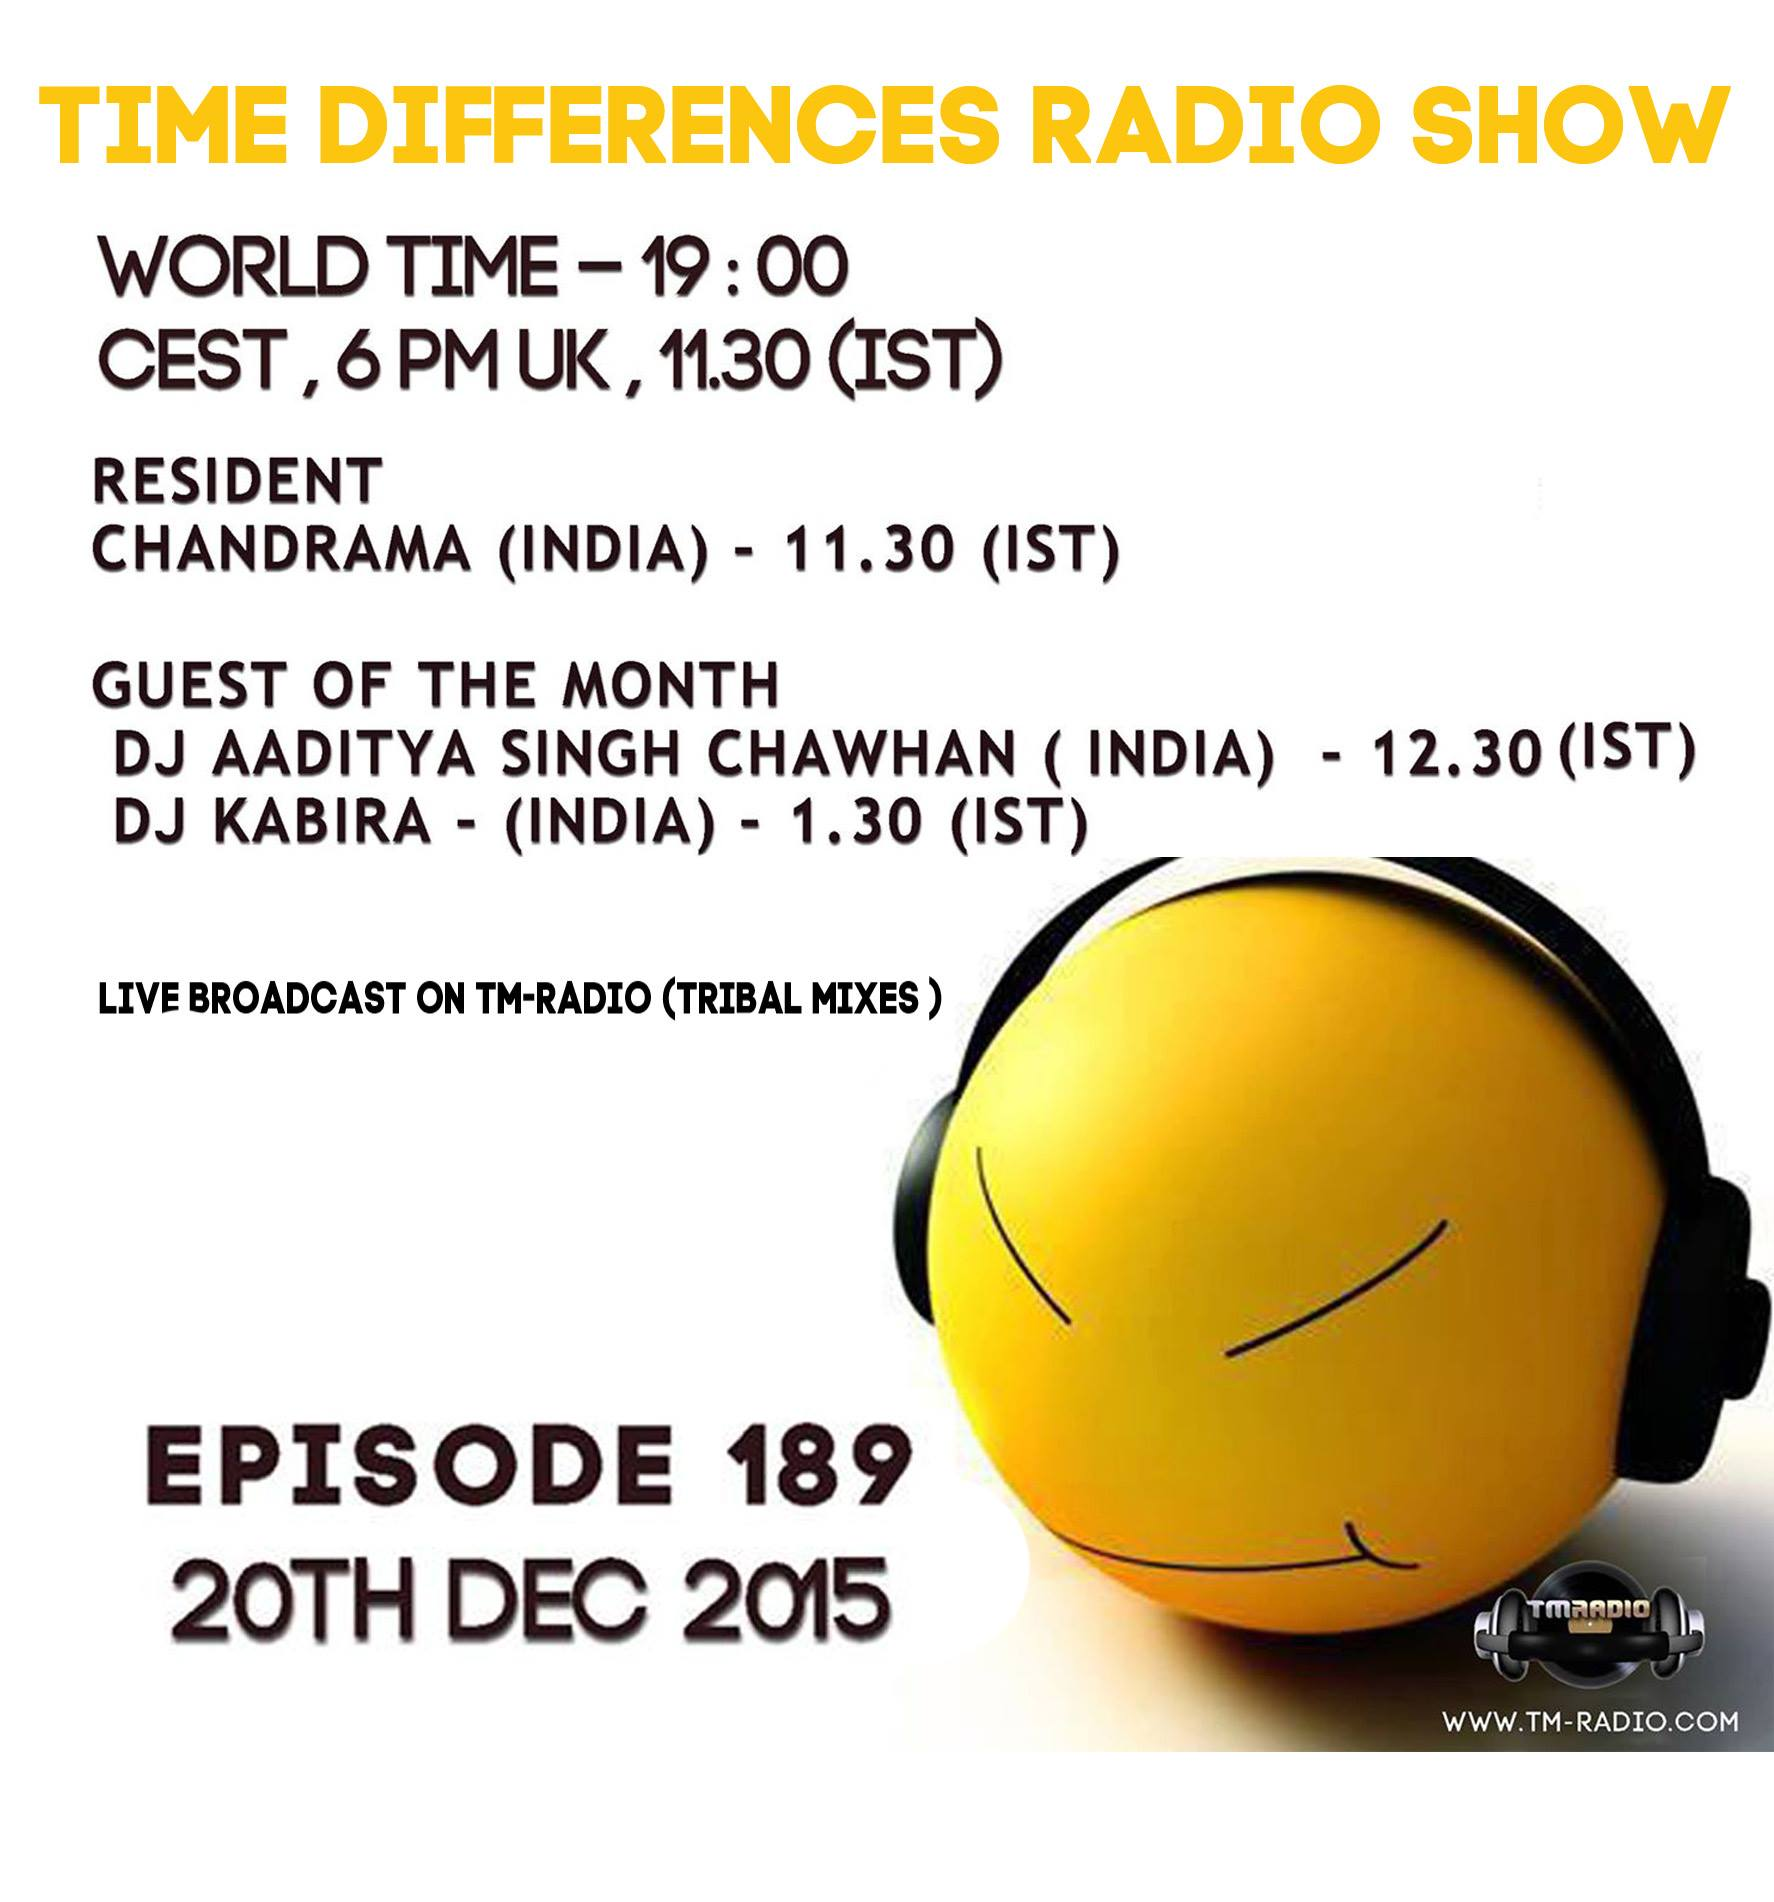 Episode 189, hosted by Chandrama (from December 20th, 2015)